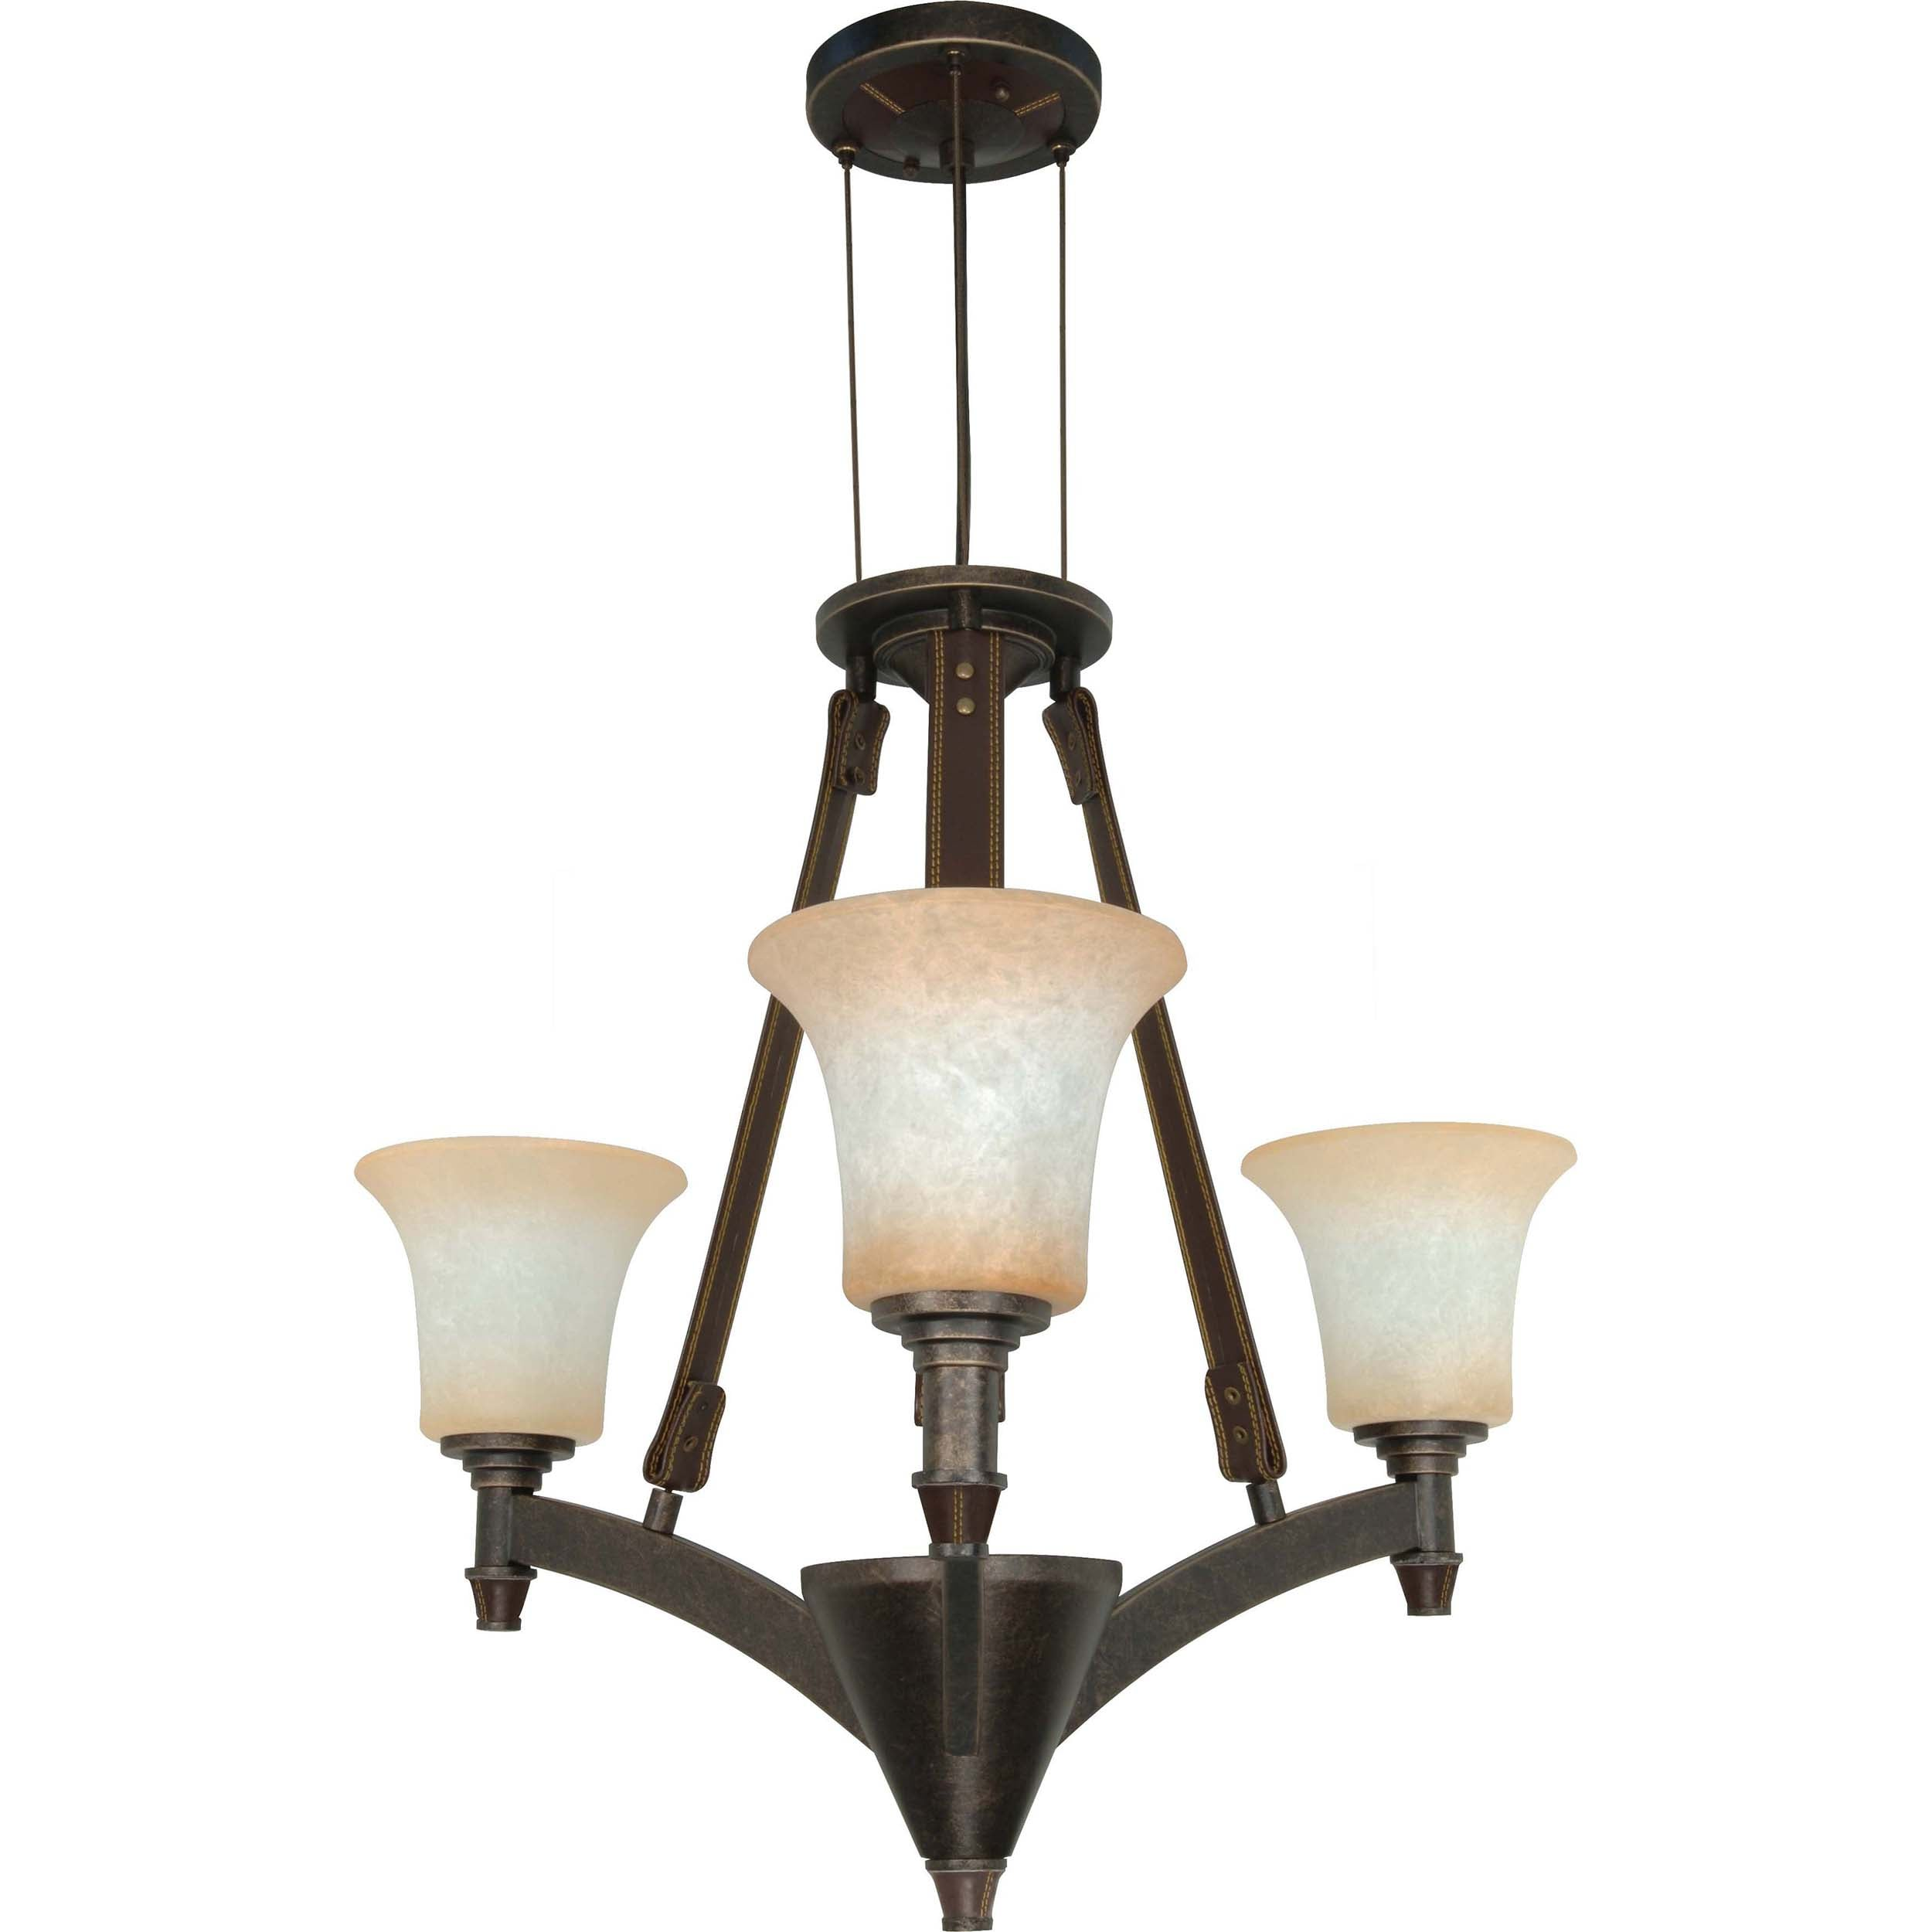 Viceroy 3-light Golden Umber With Burnt Sienna Glass Energy Star Chandelier